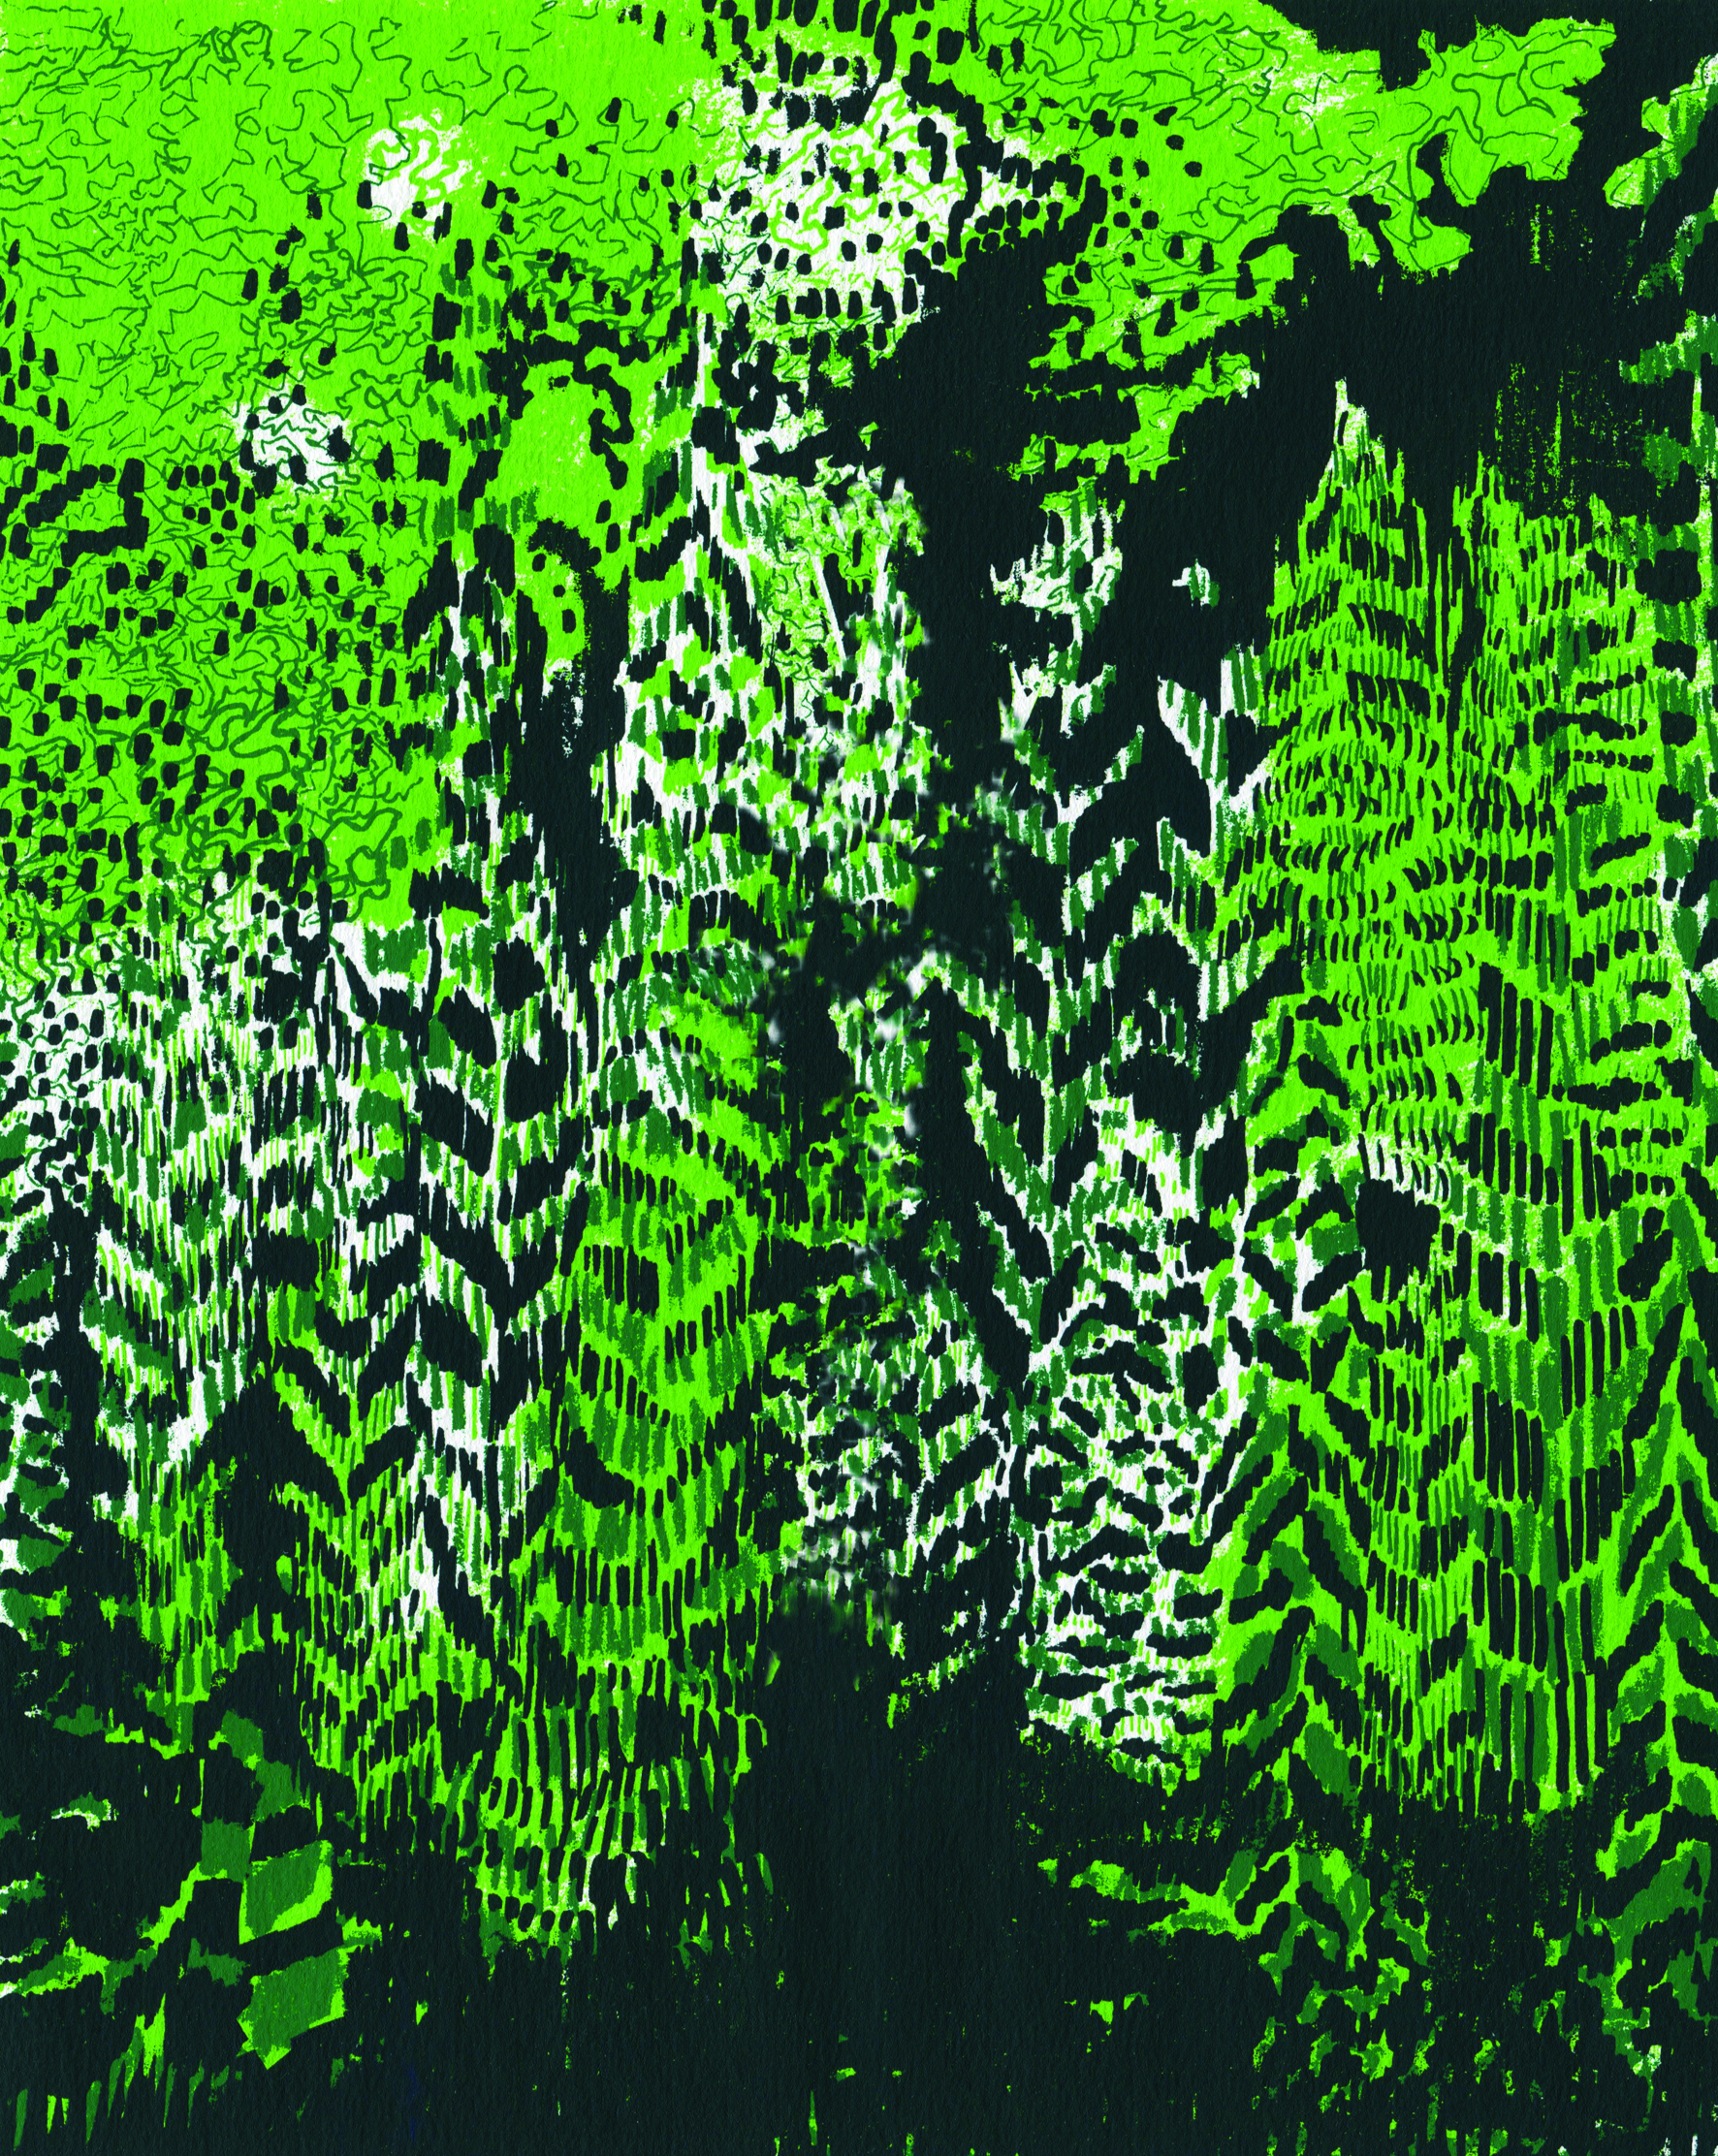 Green is the Colour-Illustration-No tree.jpg